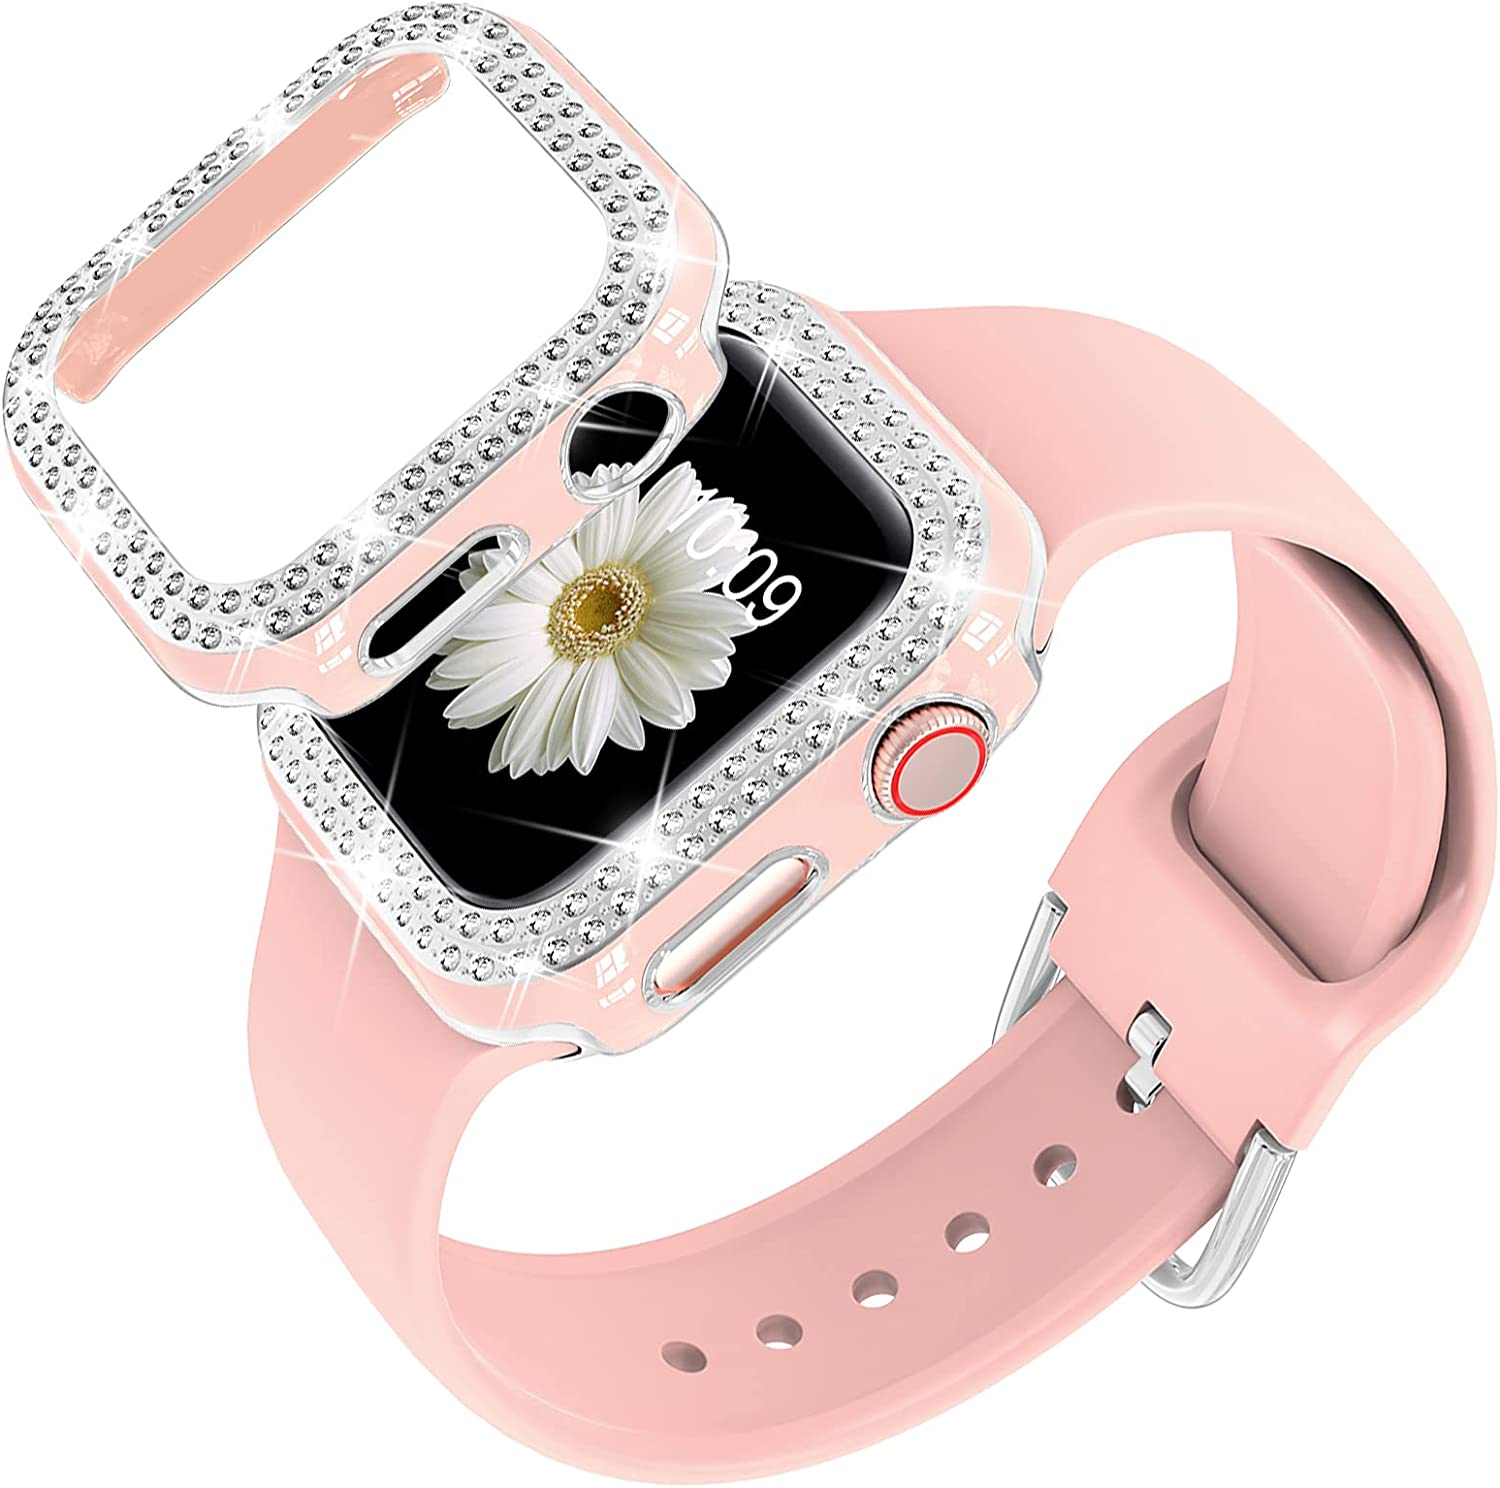 DABAOZA Compatible for Apple Watch Band 38mm 42mm with Glitter Bumper Case, Women Silicone Soft Comfortable Adjustable Strap with Buckle for iWatch Series 3/2/1